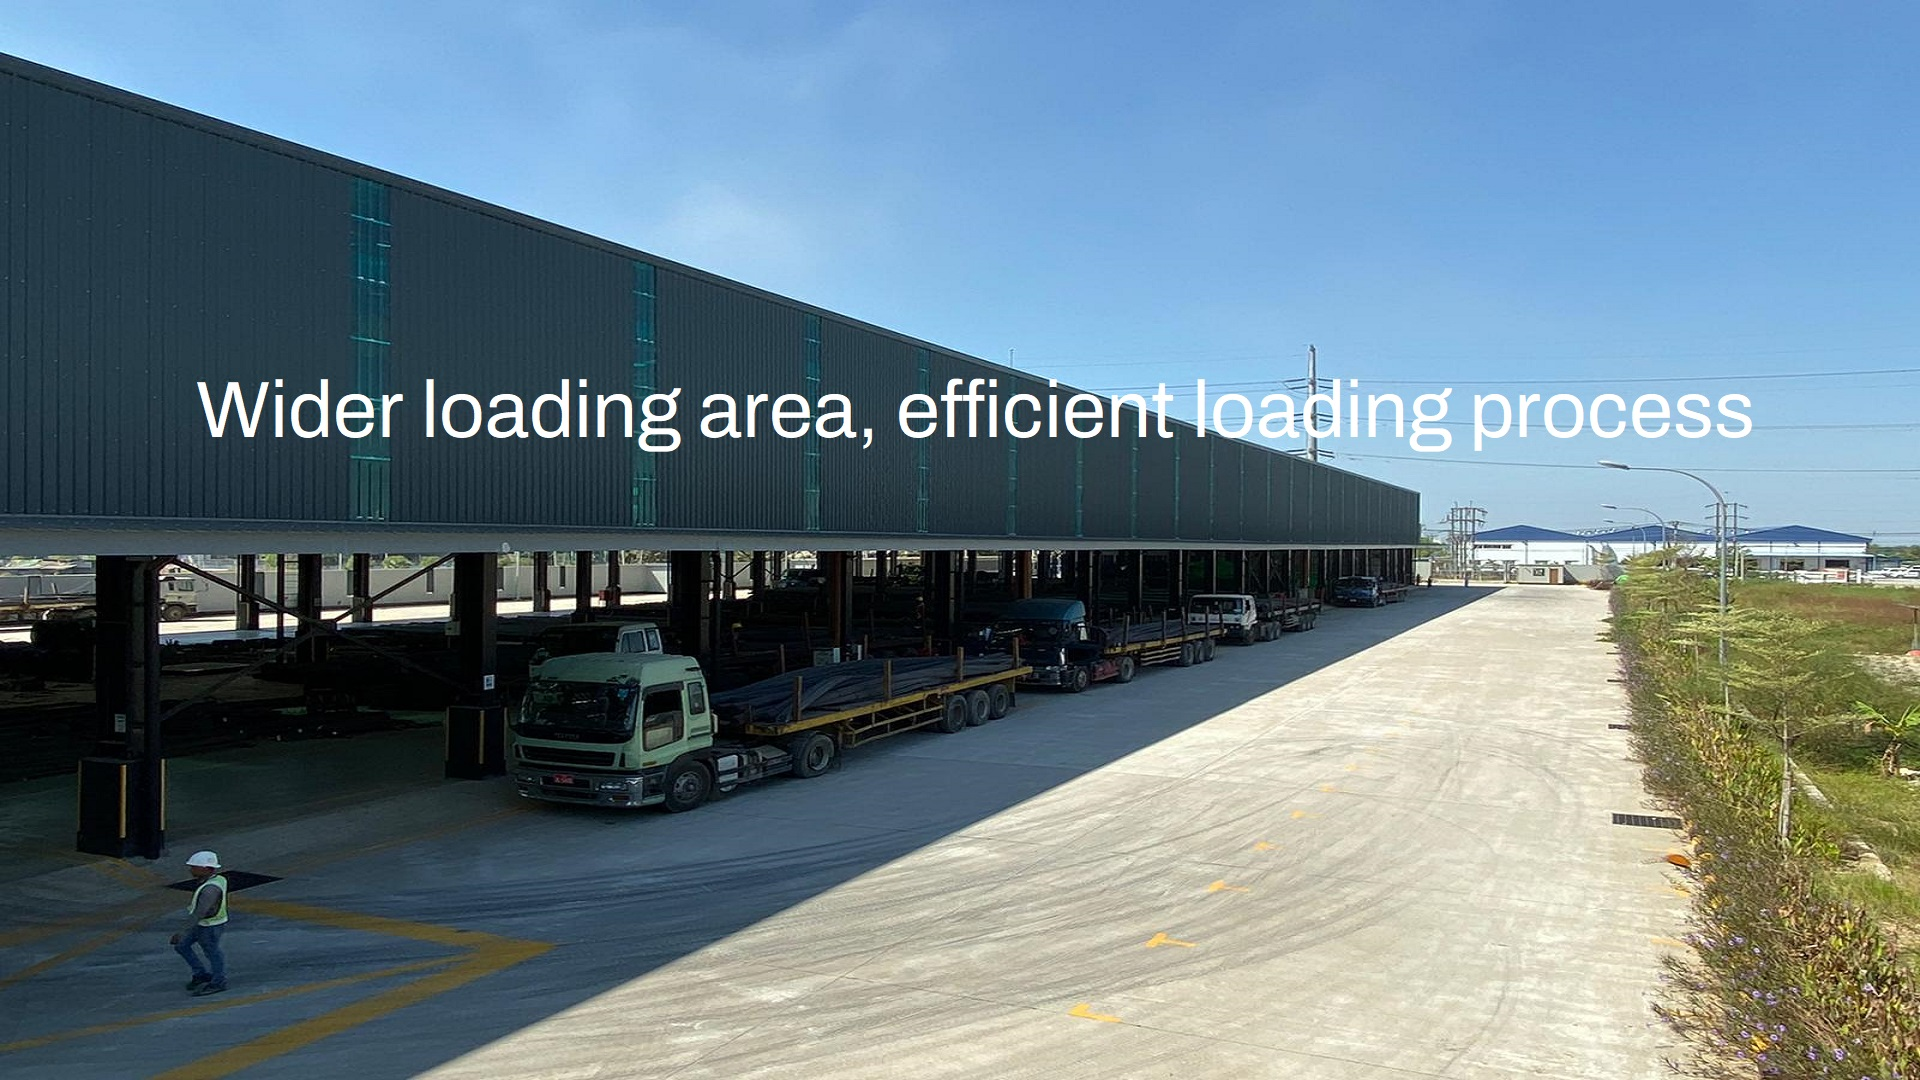 Wider loading area, efficient loading process